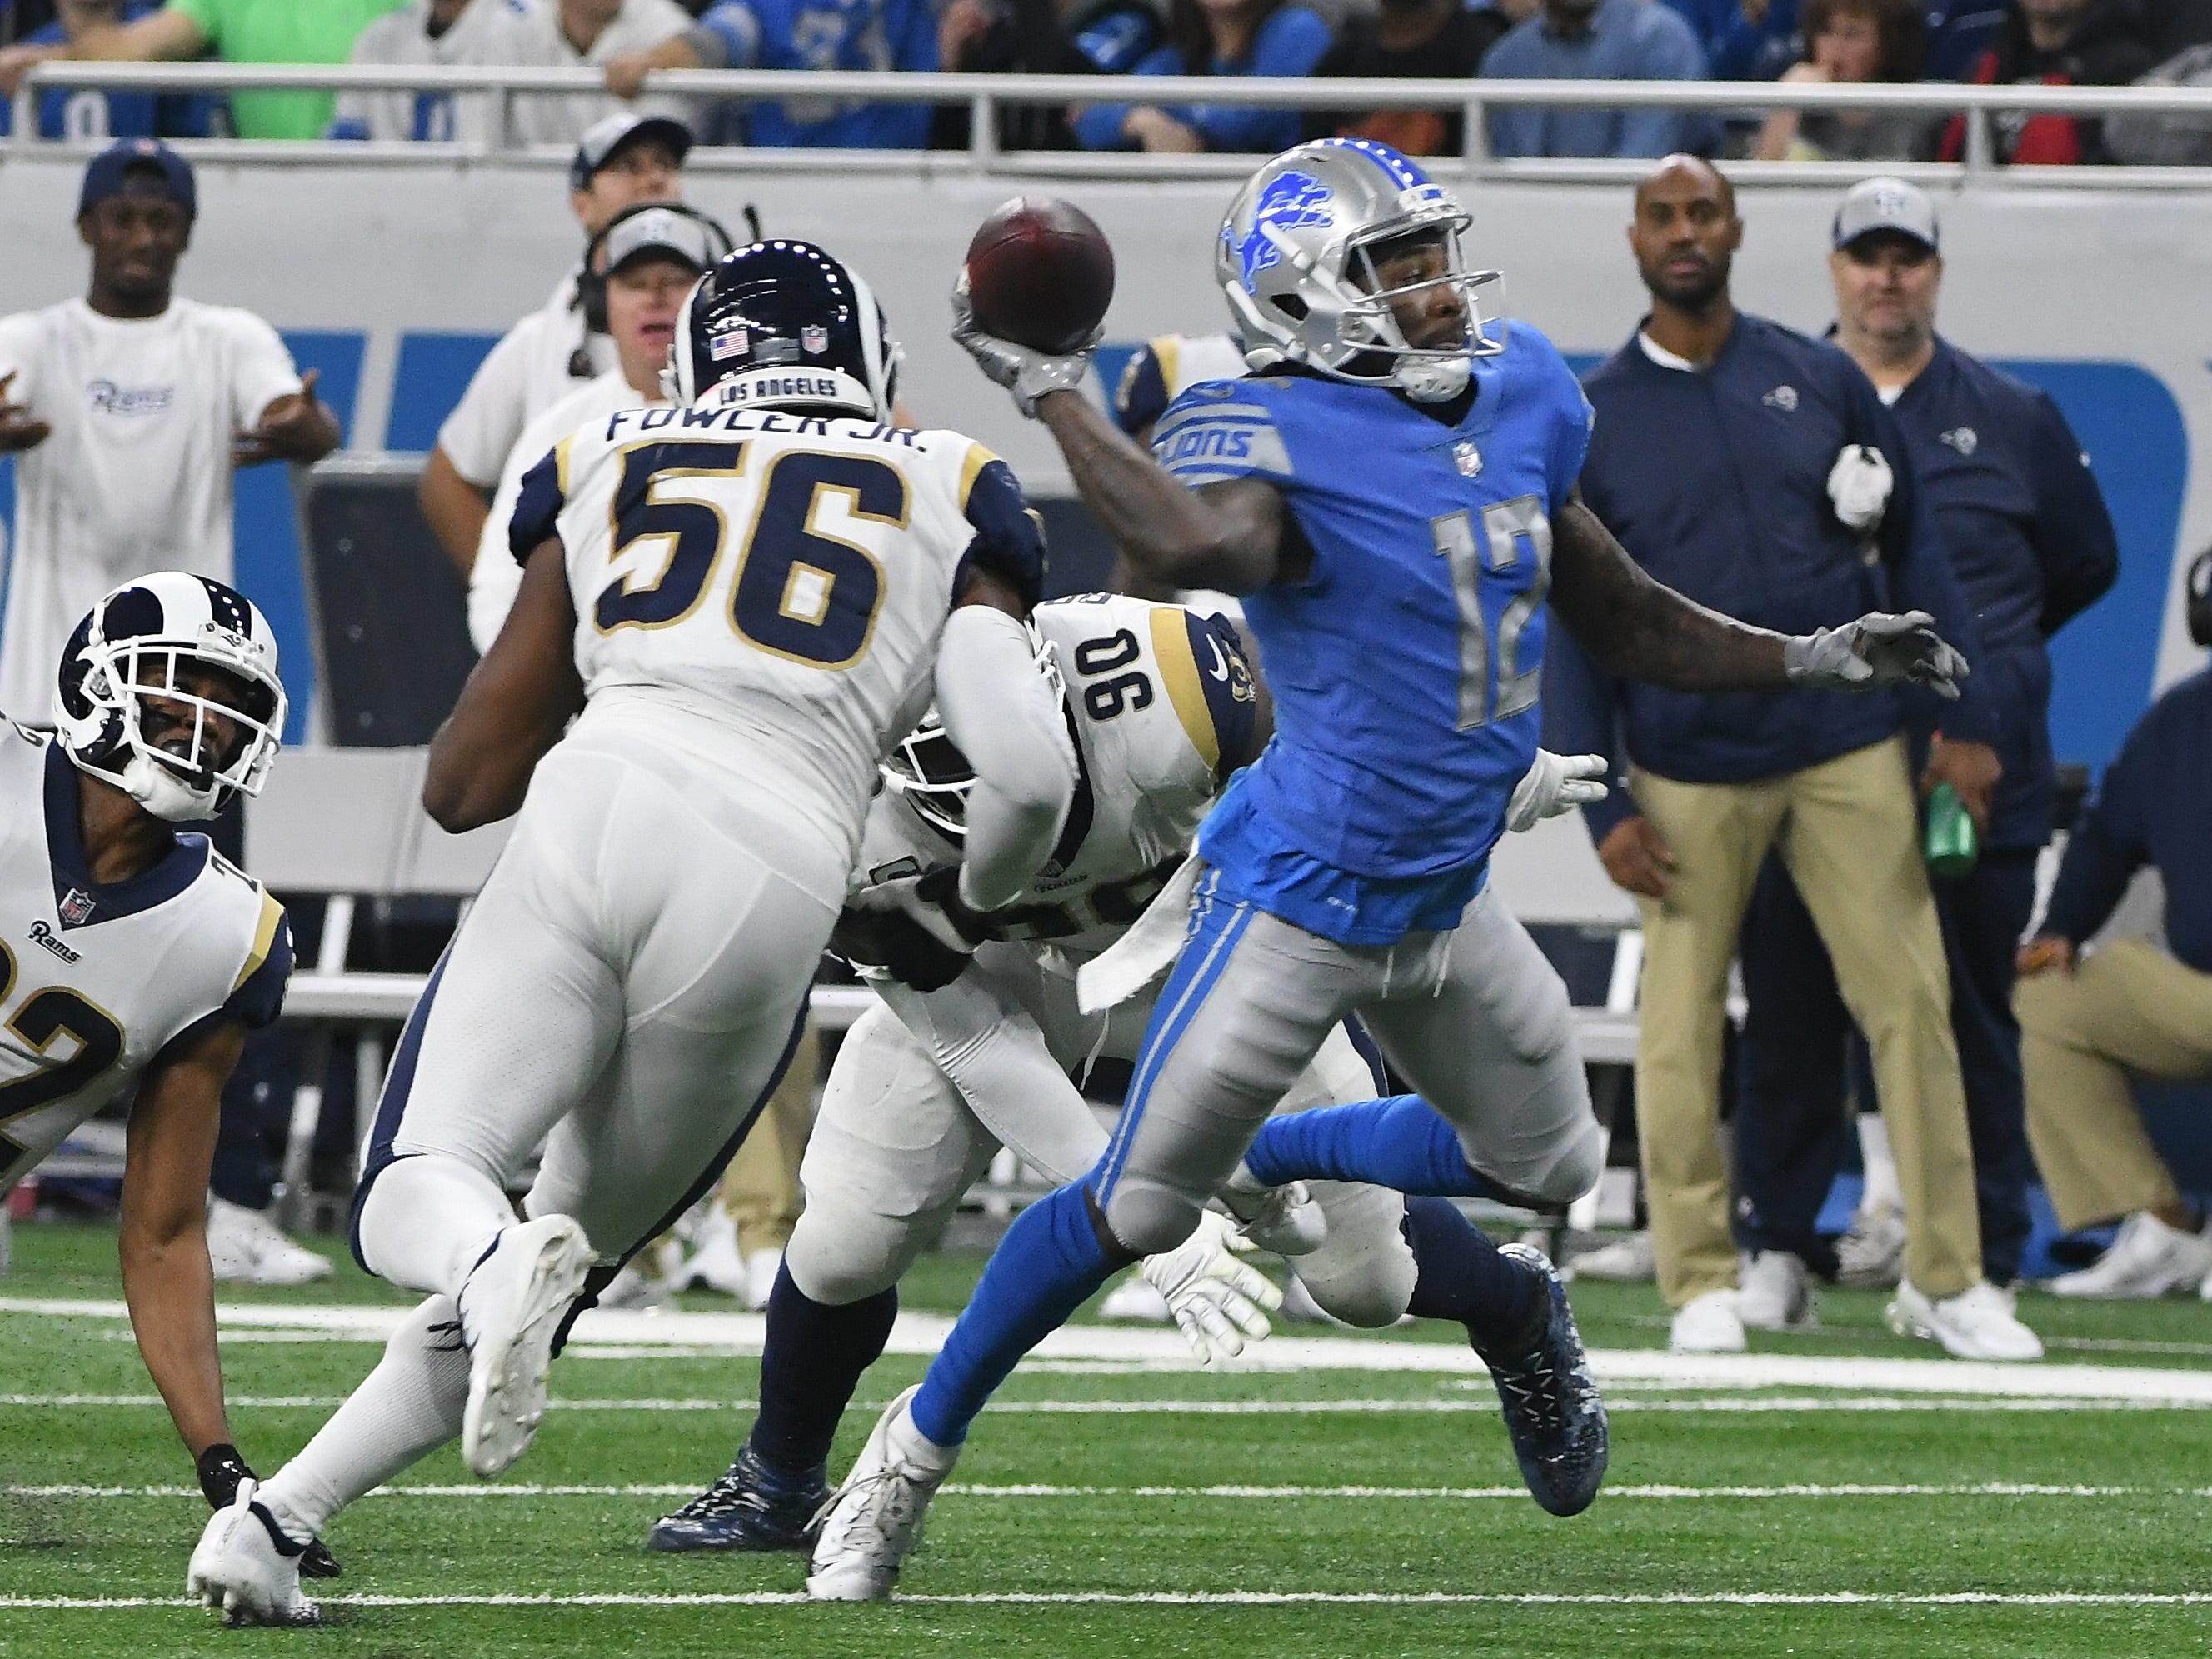 On a trick play, Lions wide receiver Bruce Ellington throws into the end zone after catching a lateral from quarterback Matthew Stafford but is incomplete in the third quarter.